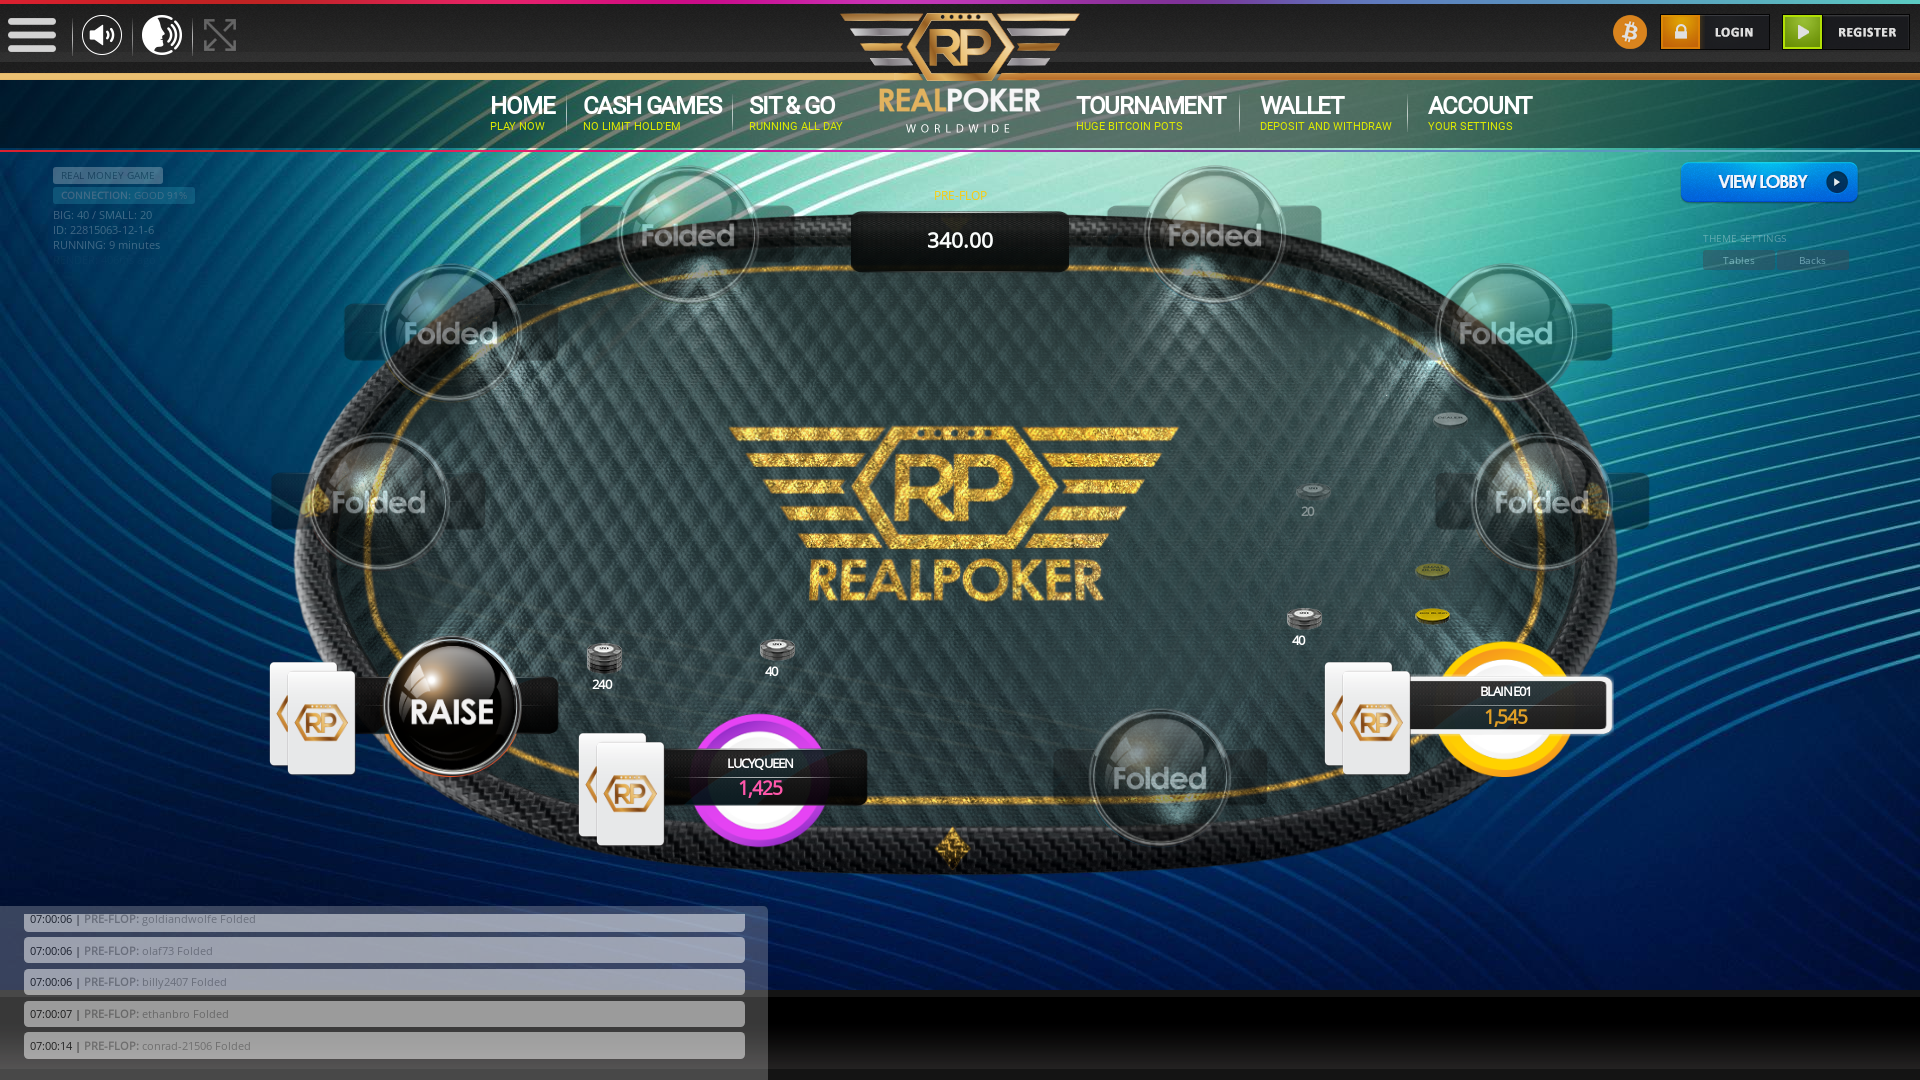 France Cryptocurrency Poker from August